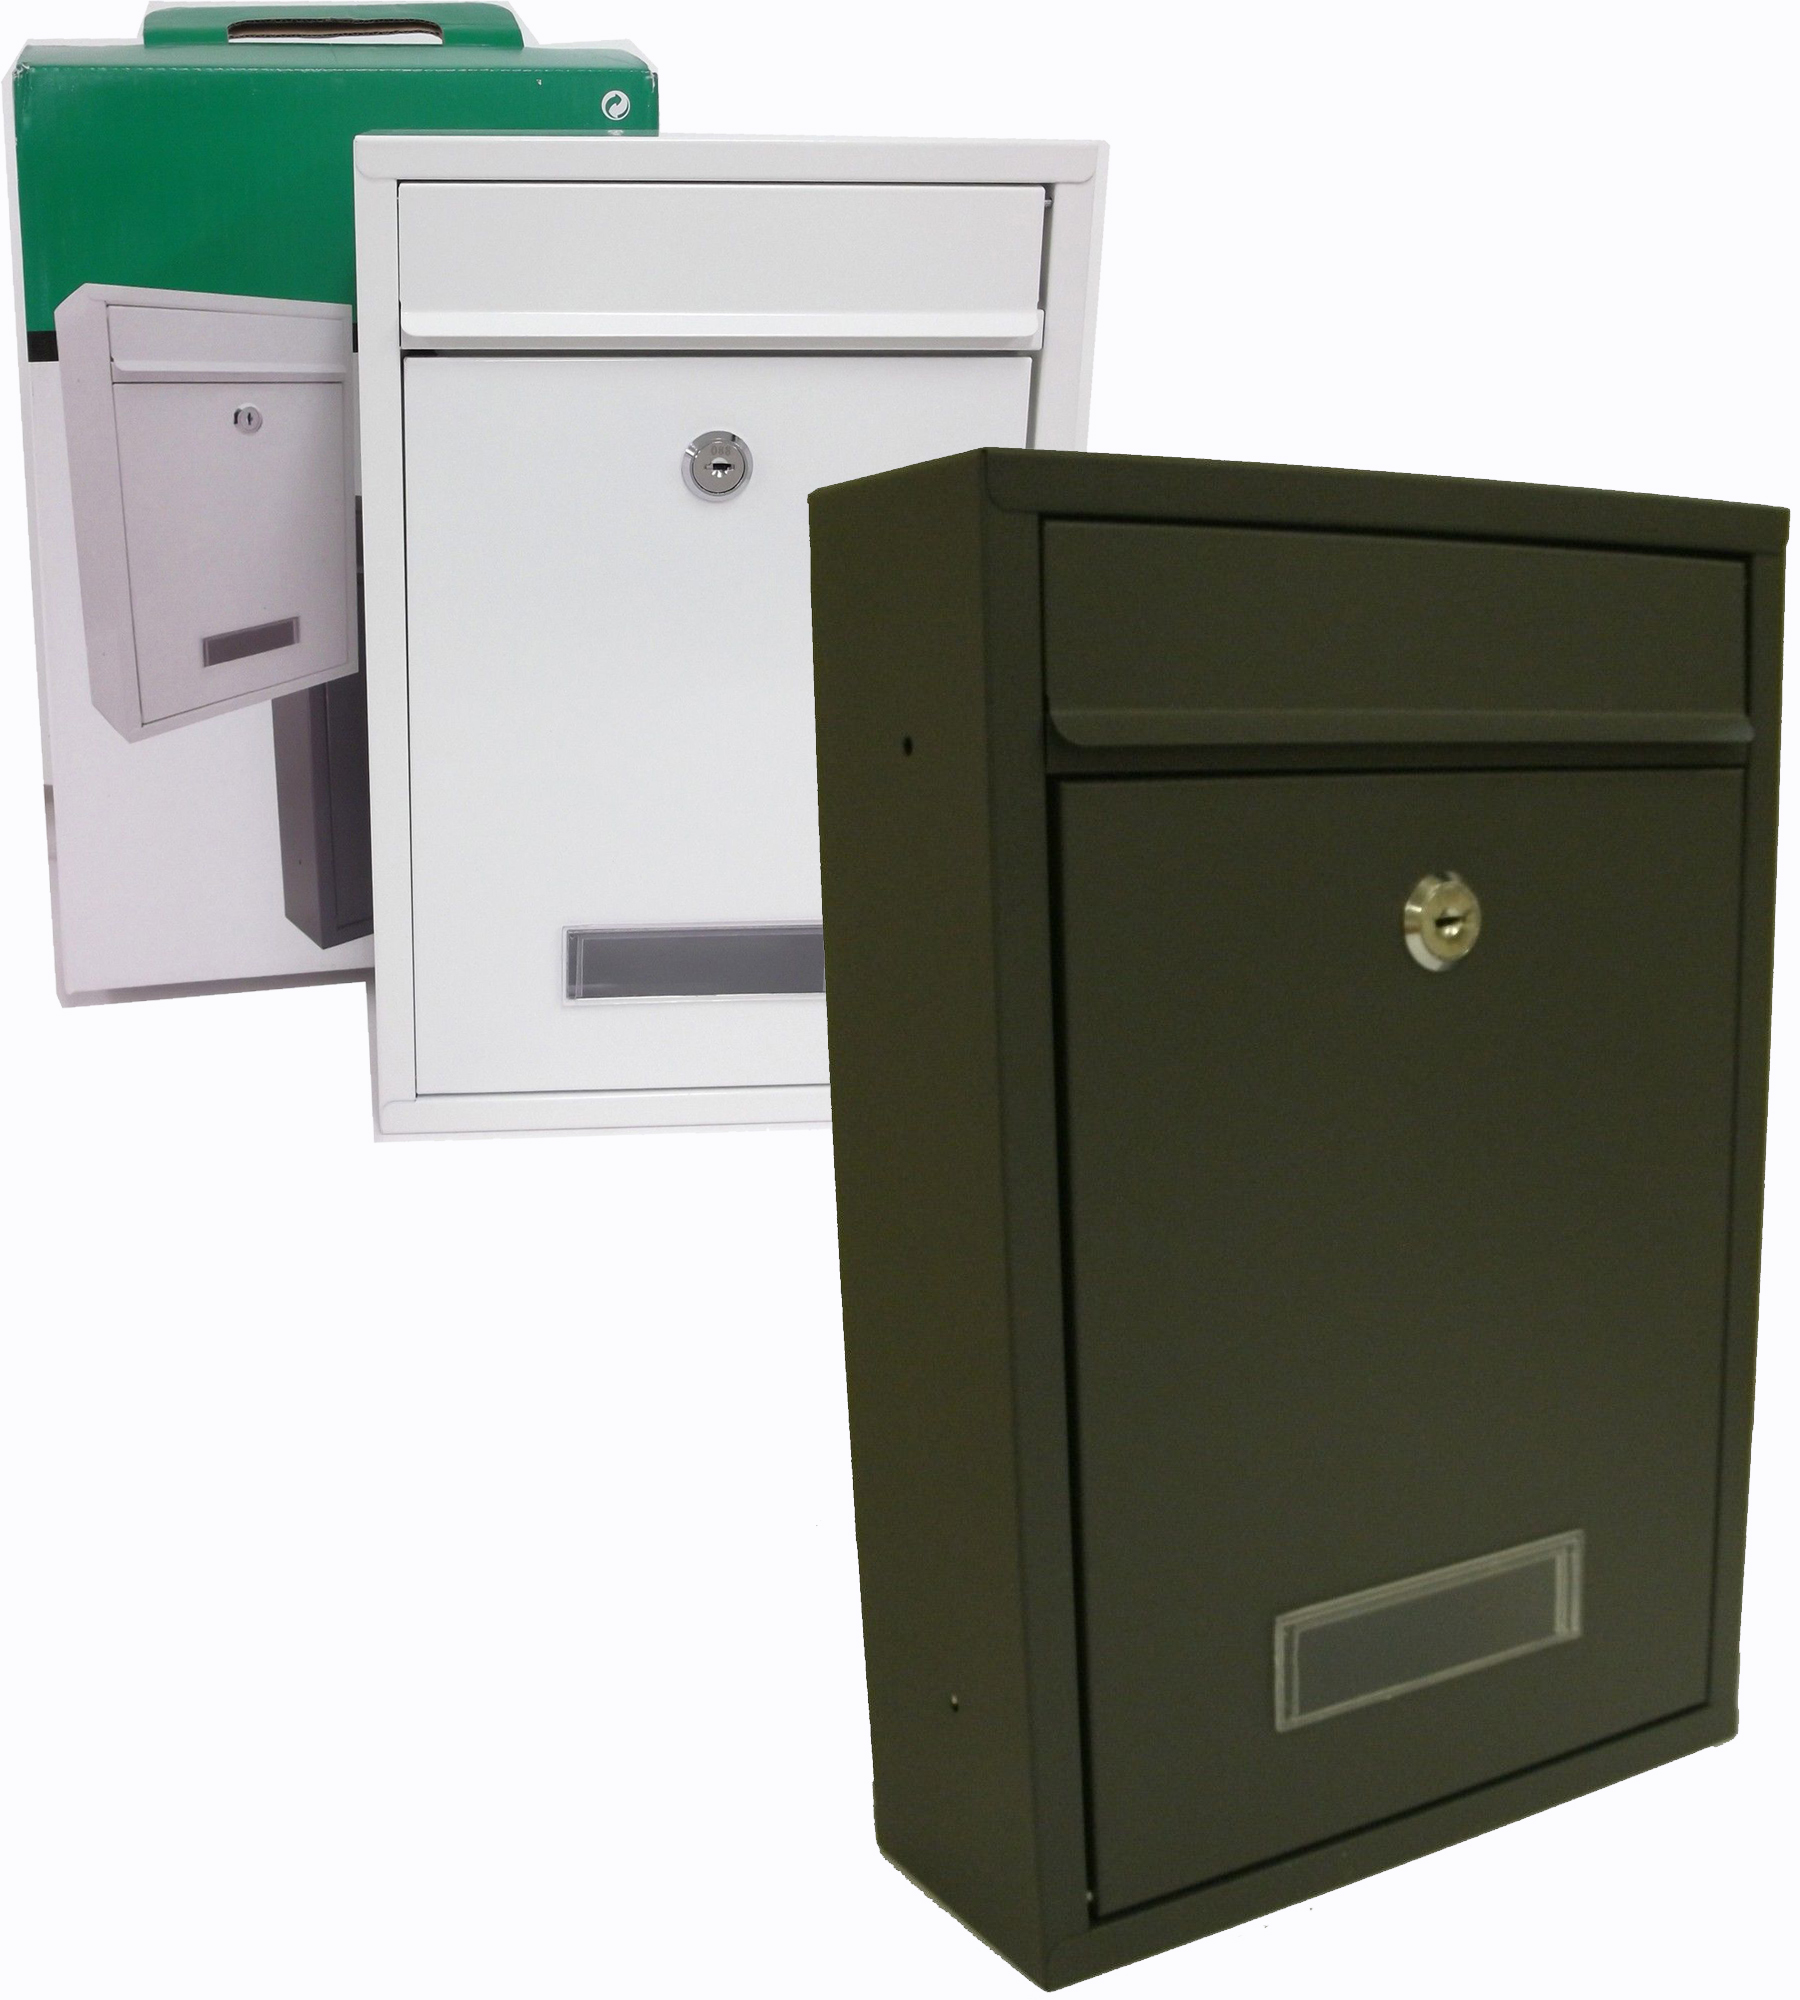 Mailbox stainless steel locking mail box letterbox postal box modern - New Letter Post Mail Box Post Box Letter Box Stainless Steel Wall Mounted 2 Keys In 2 Different Colours Grey White